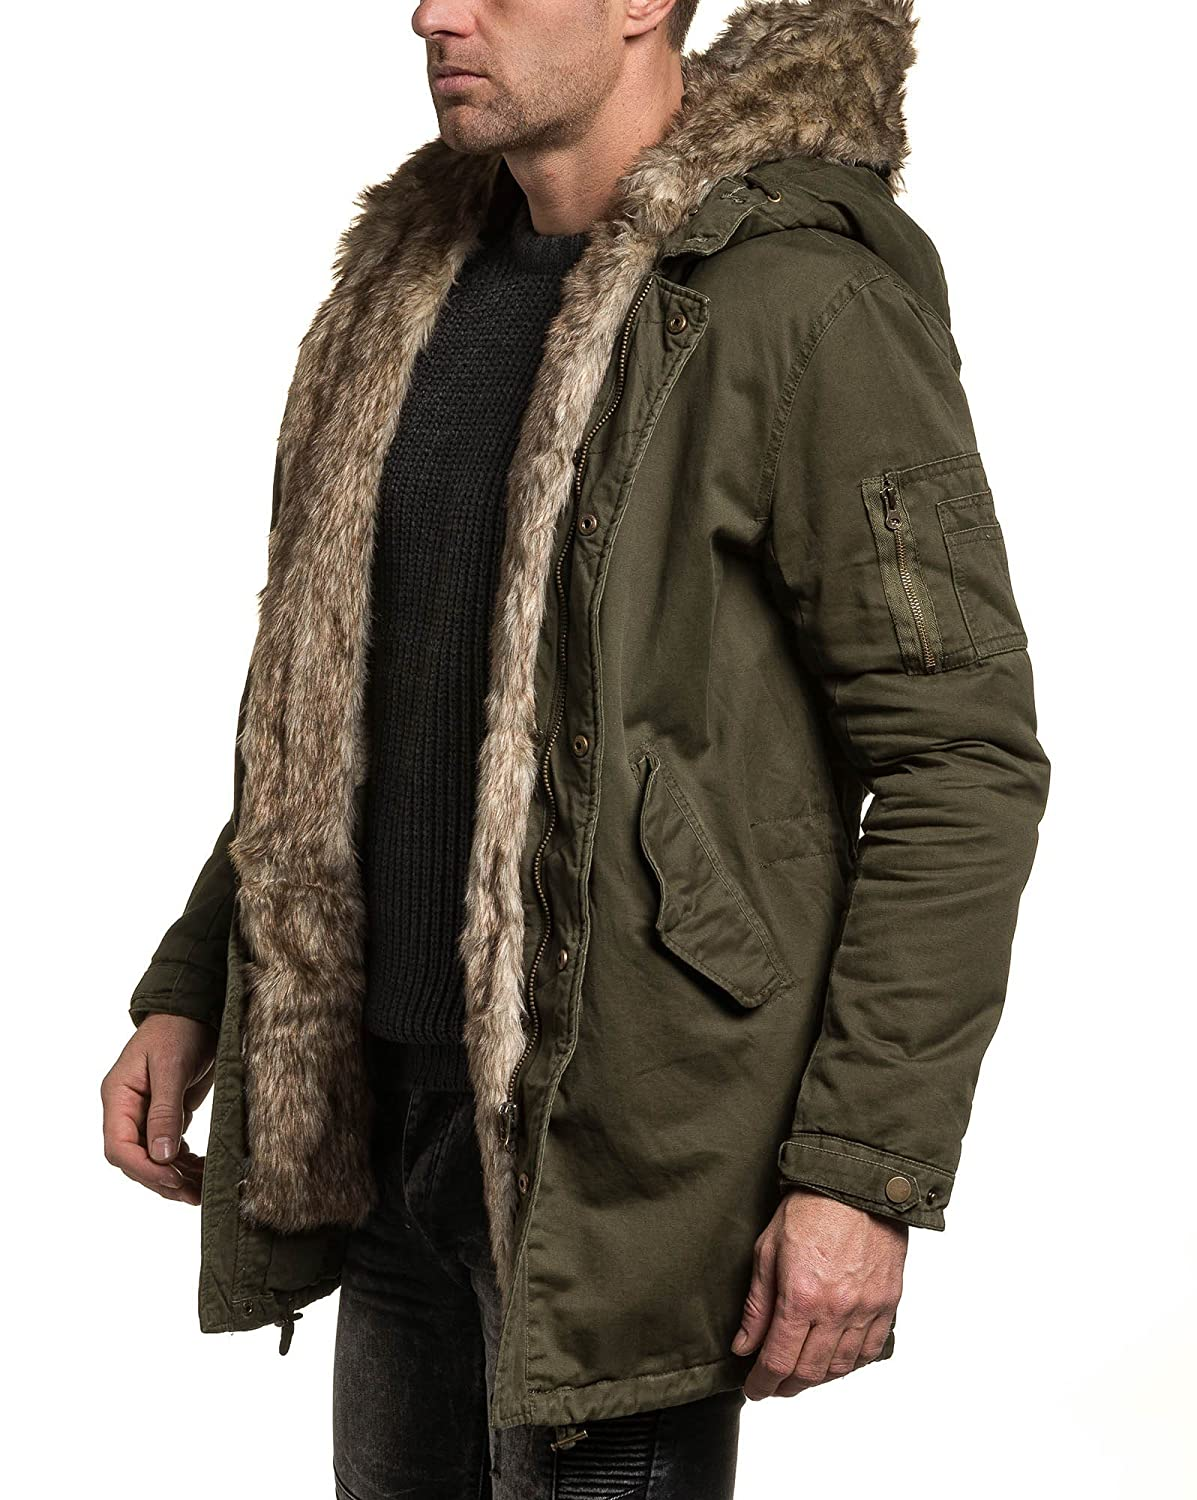 BLZ jeans - Parka khaki long thicket hooded man